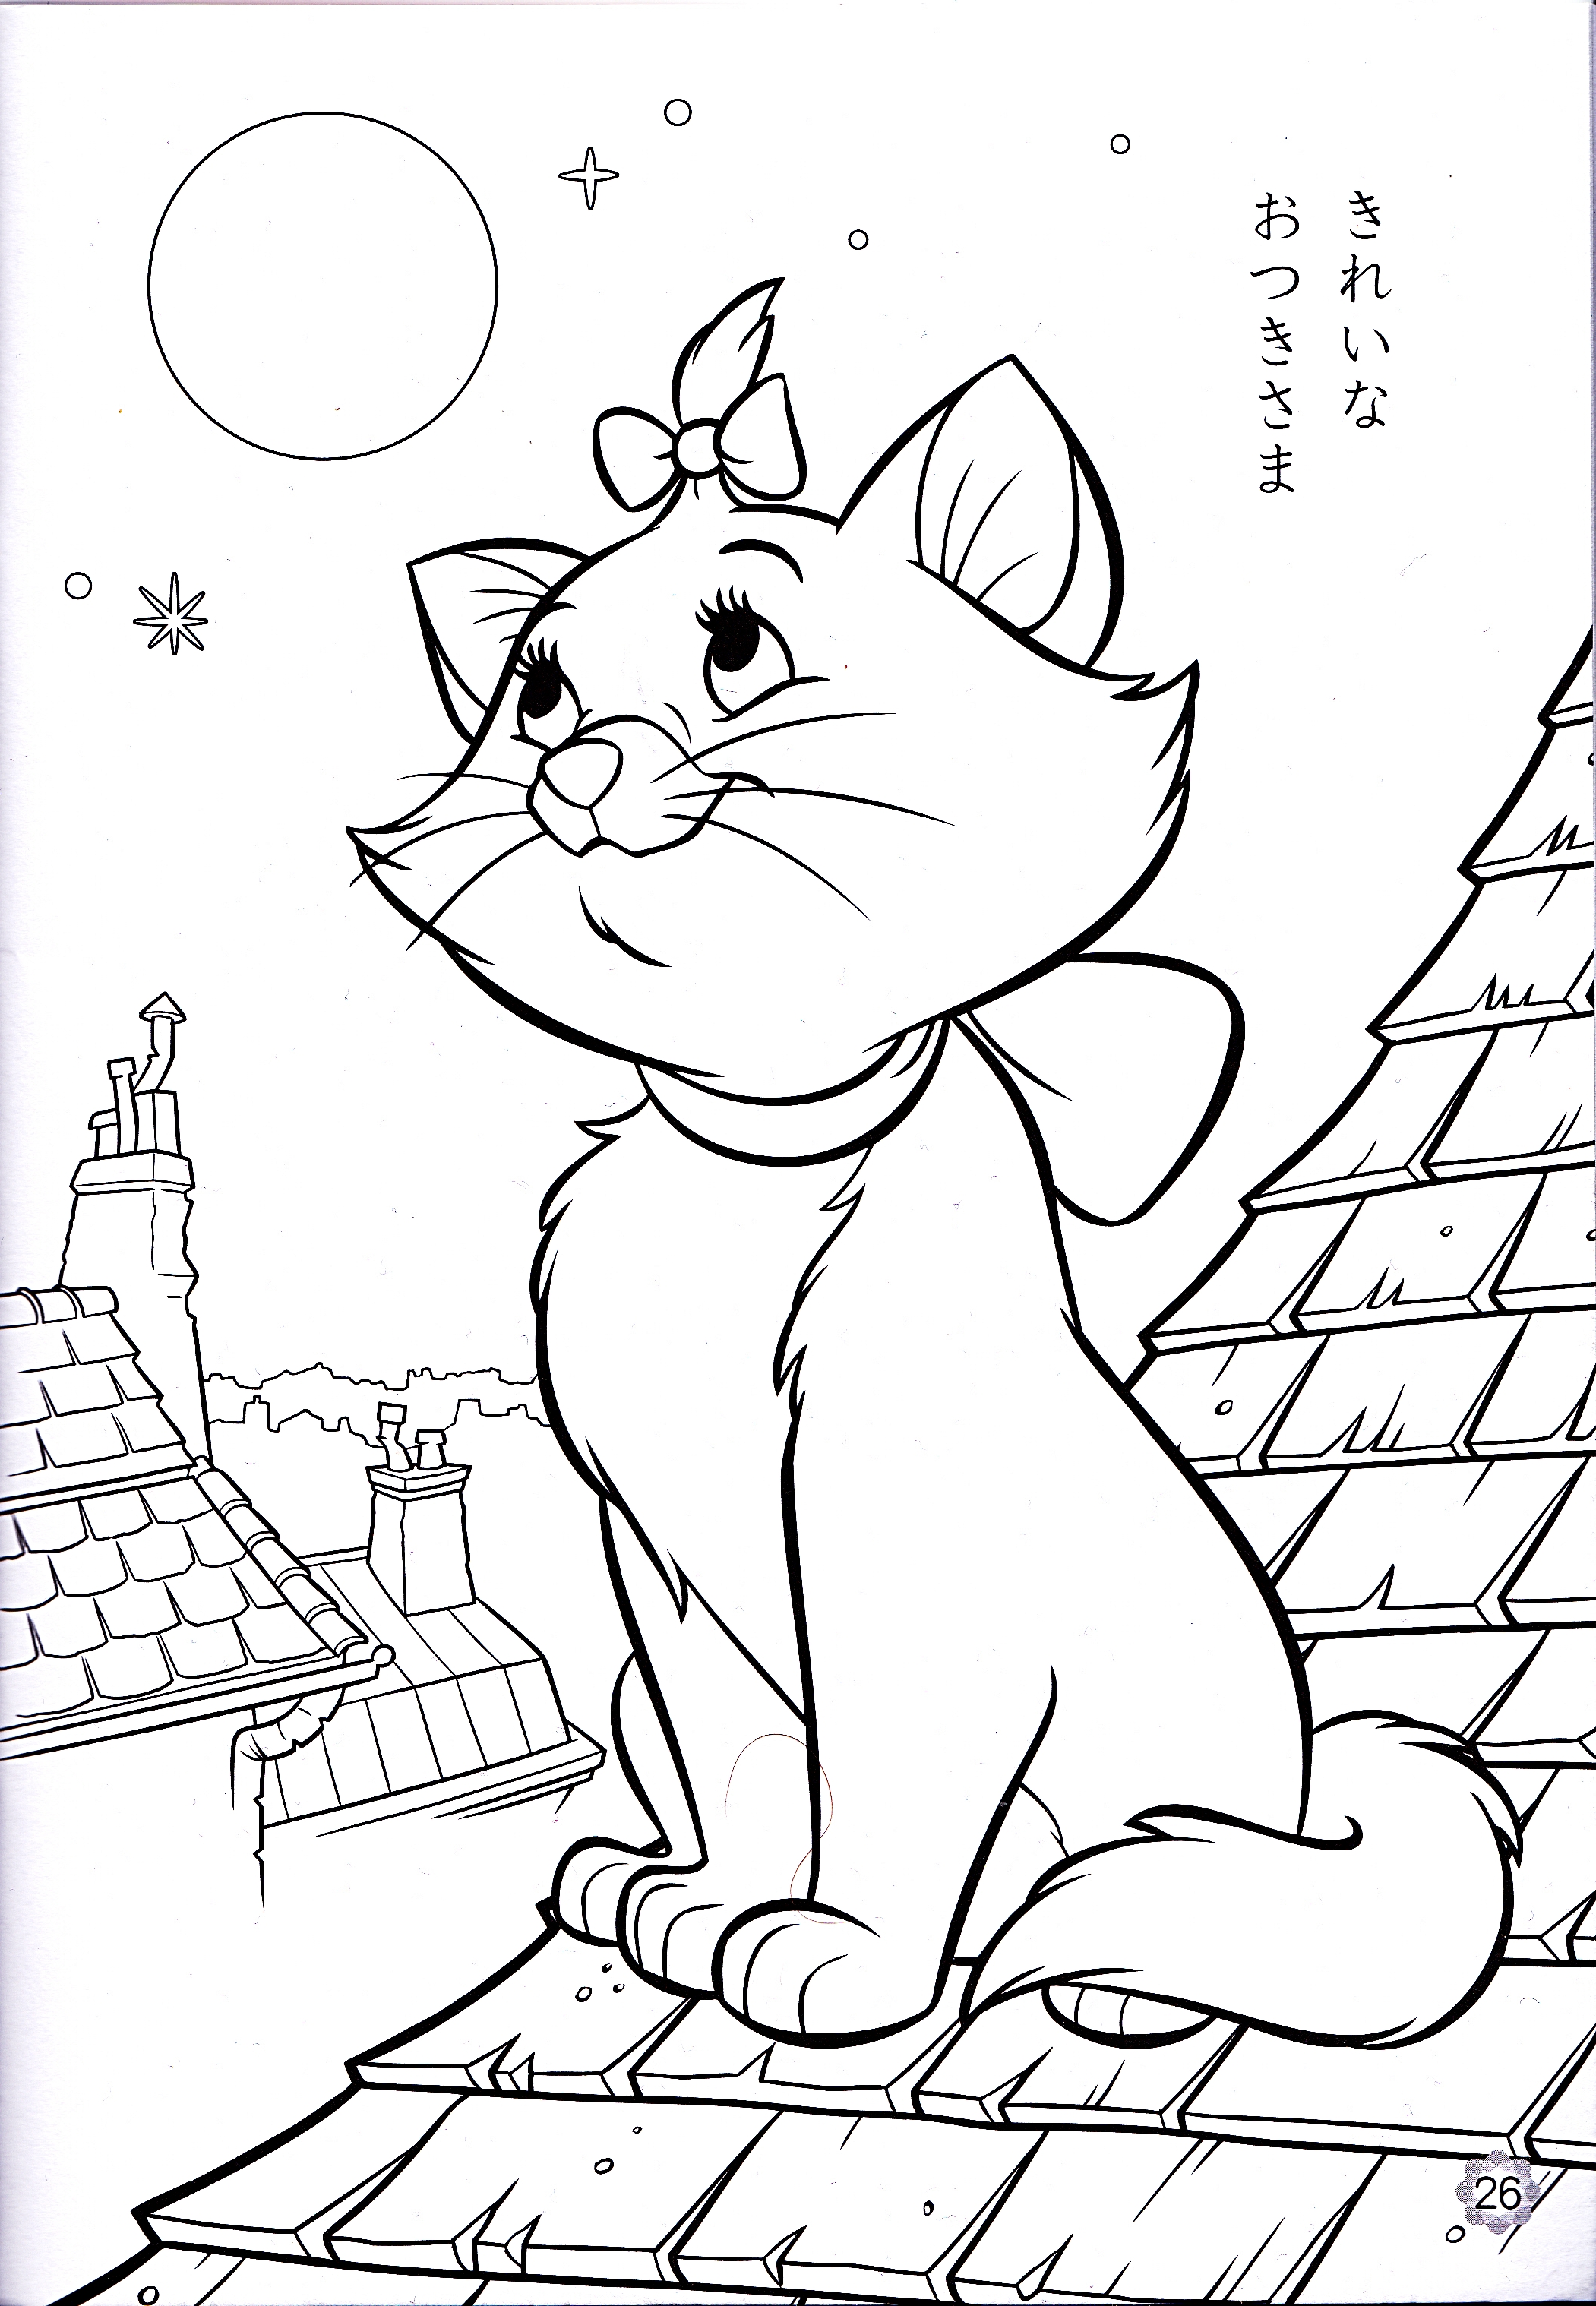 Walt Disney Coloring Pages Marie Karakter Walt Disney Foto 34502974 Fanpop